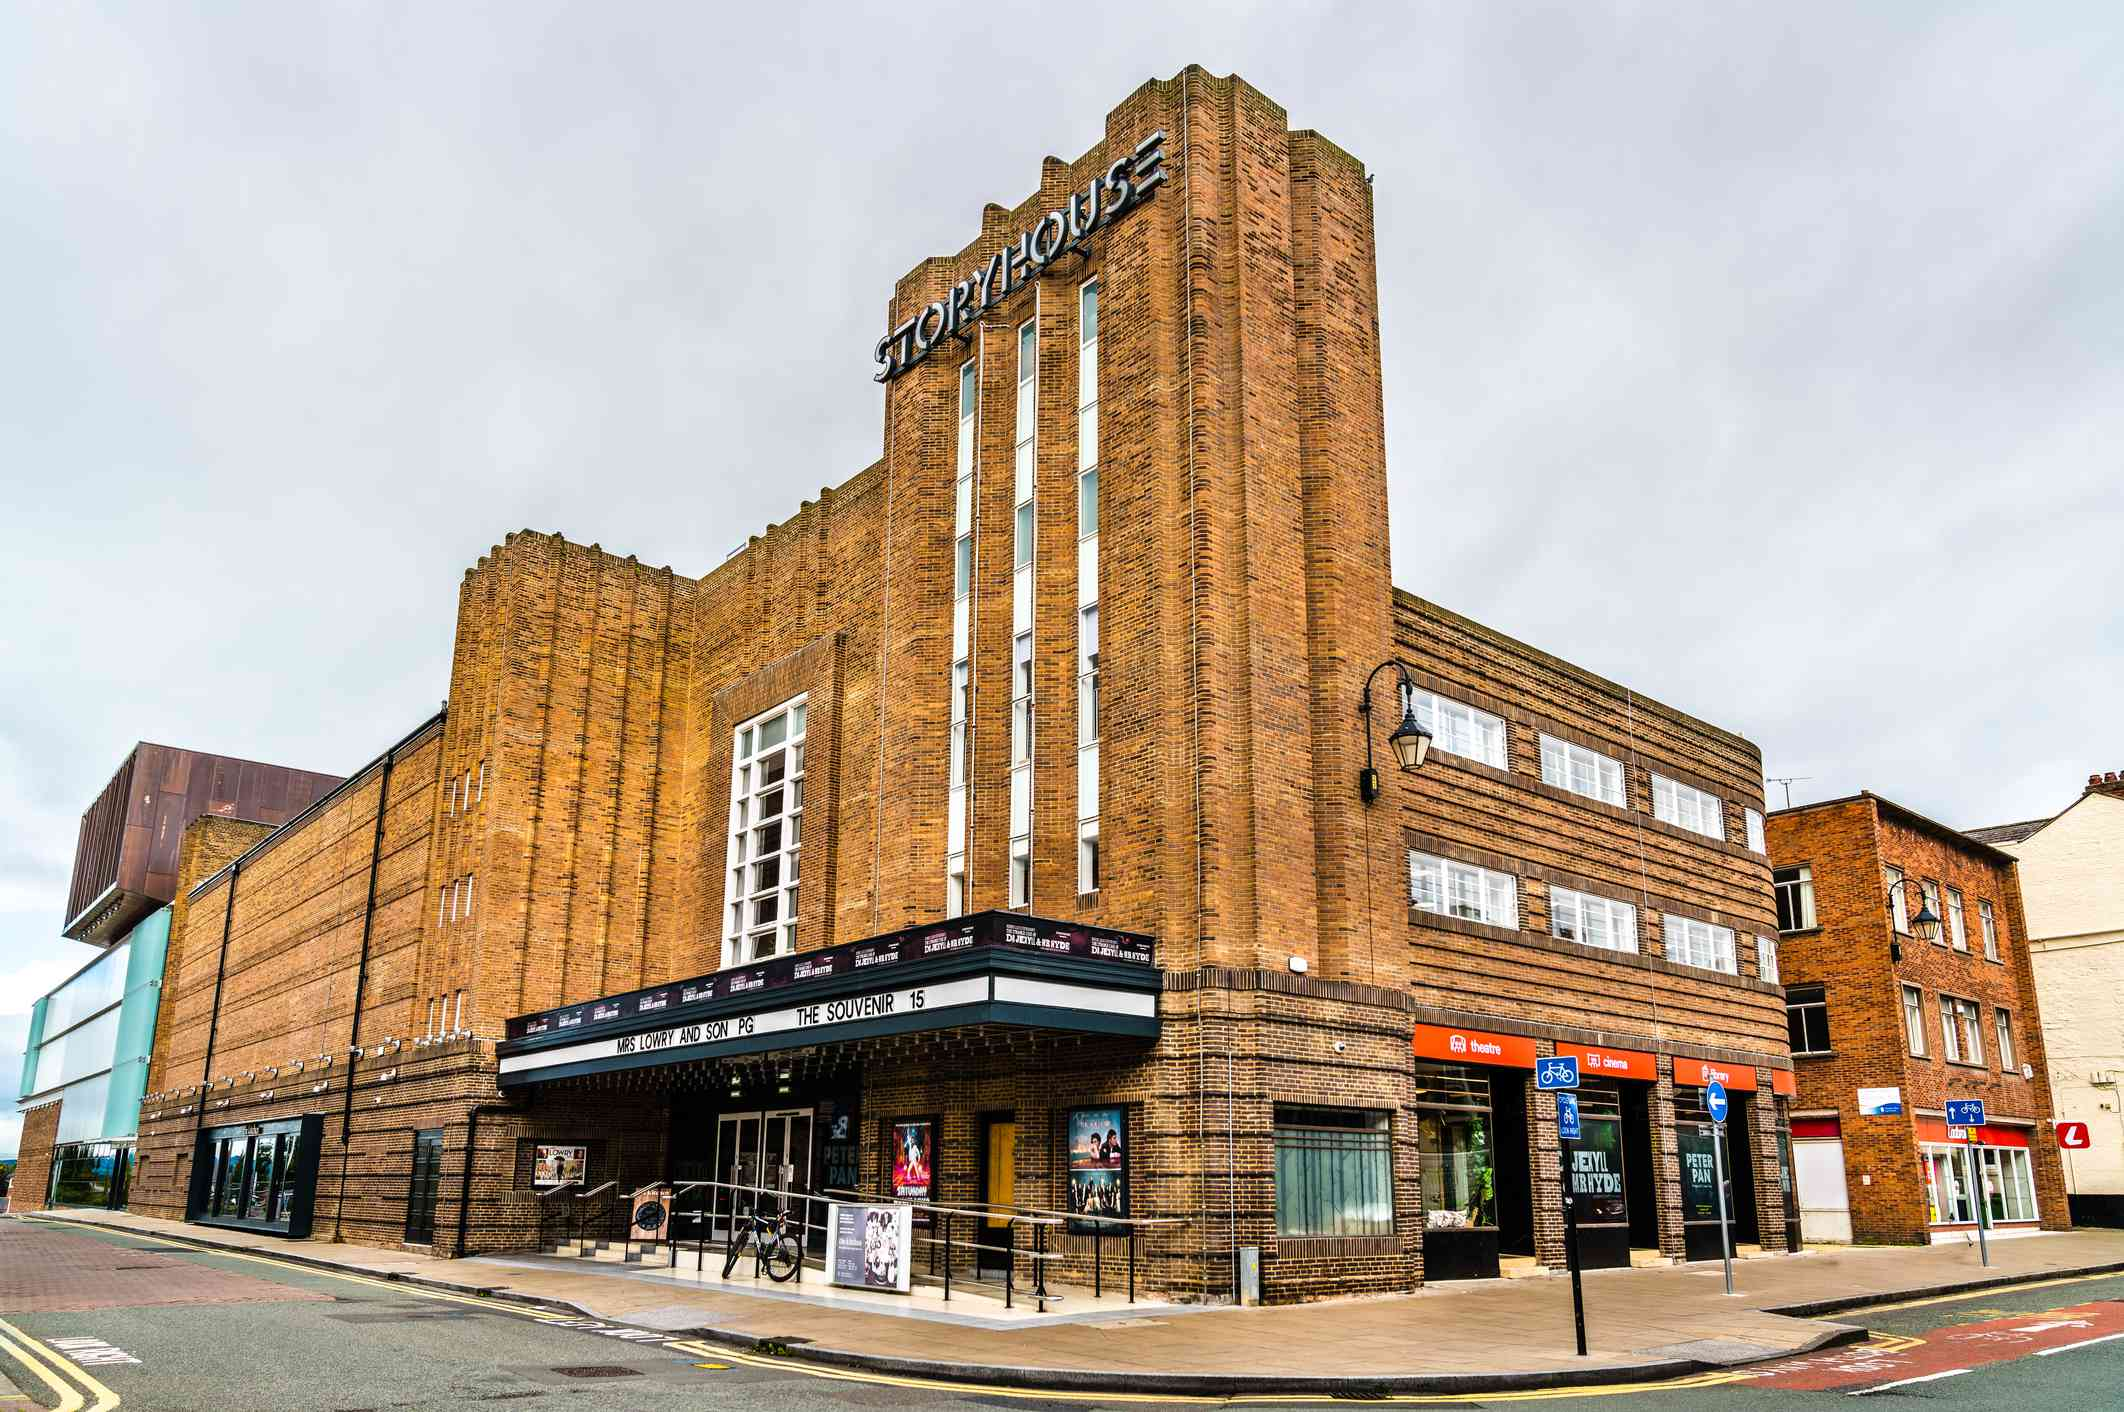 Storyhouse, a cultural building in Chester, England